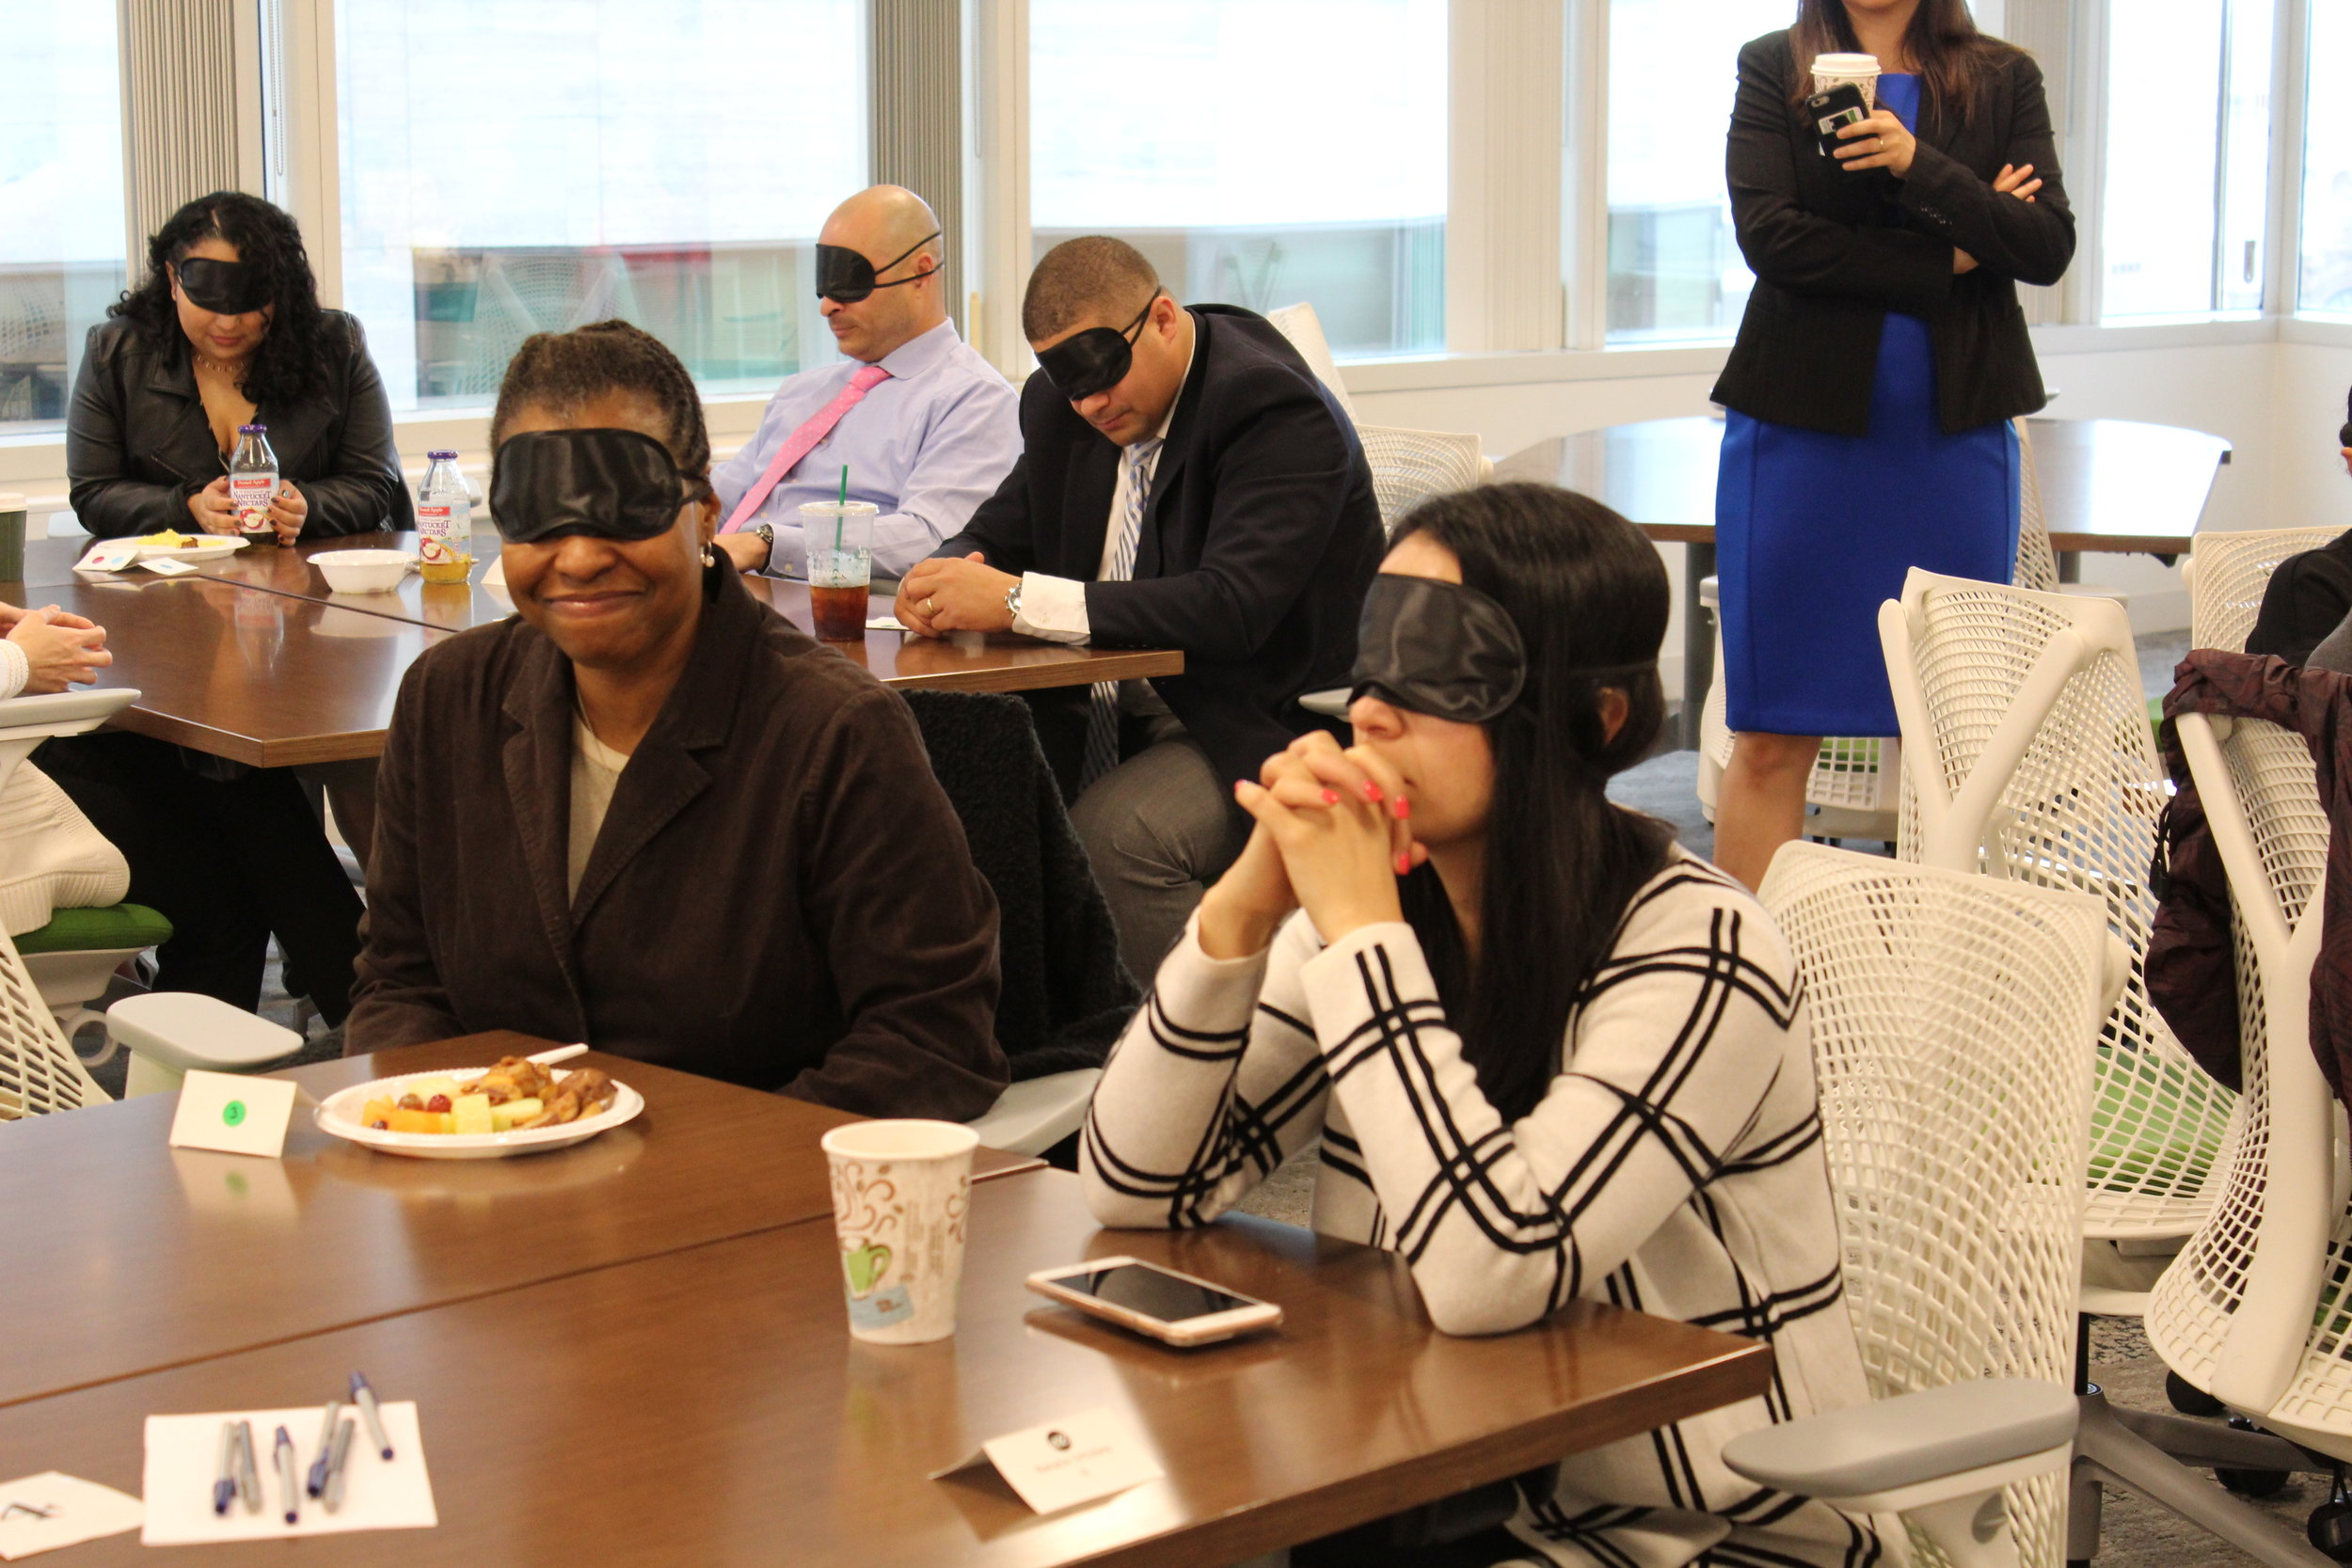 Blindfolded participants sit and listen to facilitates prompts. Two participants sit at a table in the foreground and three participants sit at a table in the background.